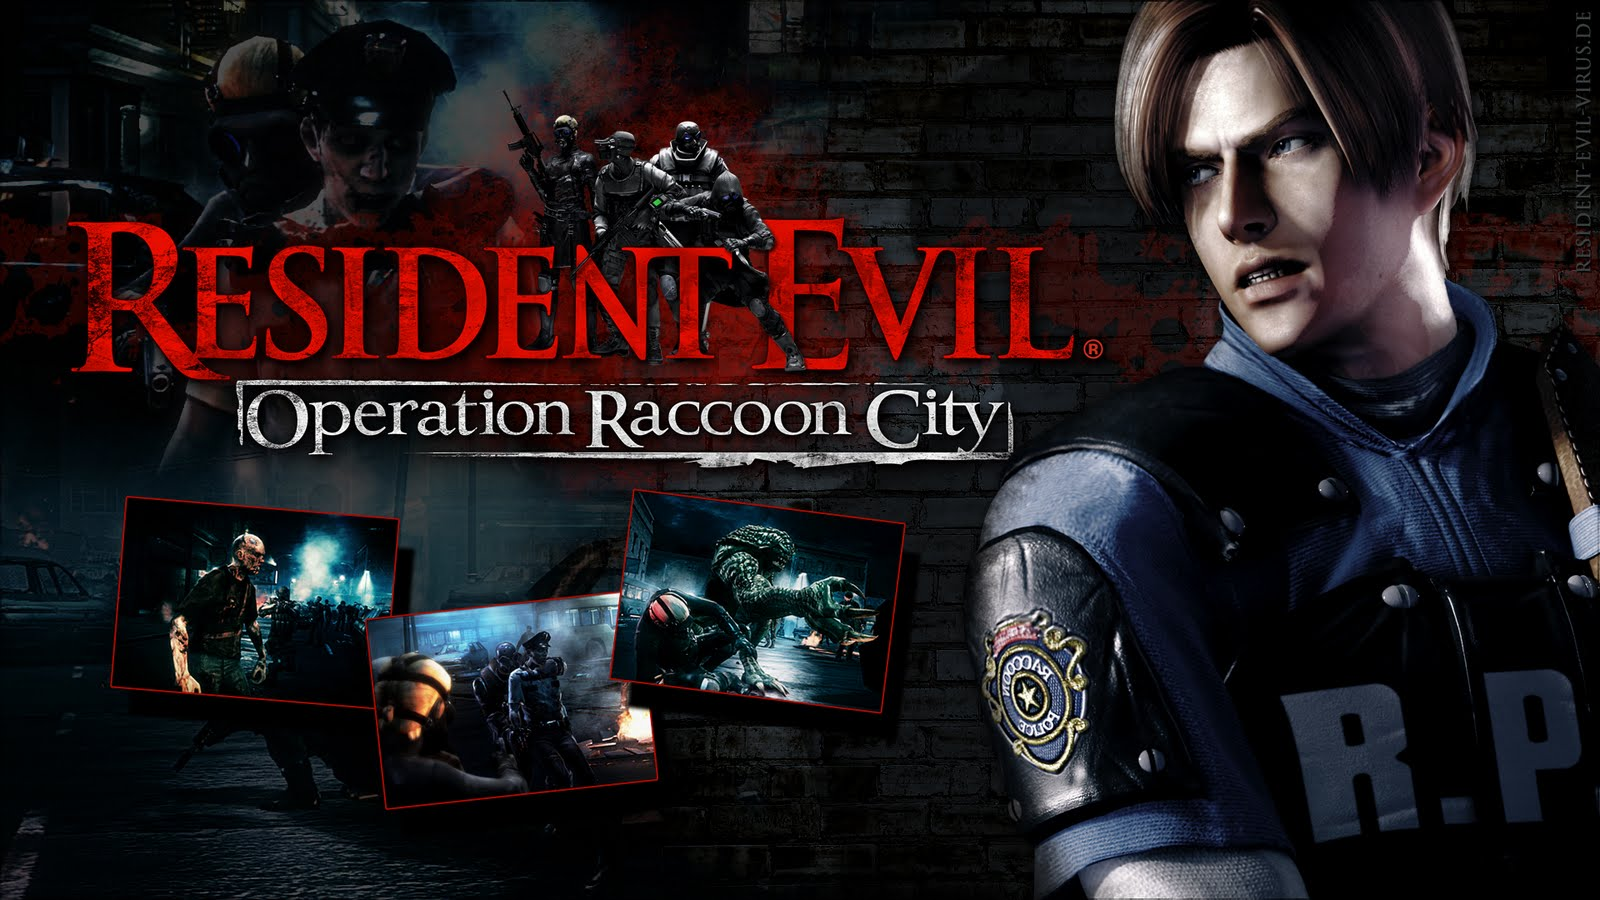 [[Megapost]] Resident Evil: Operation Raccoon City | 2012